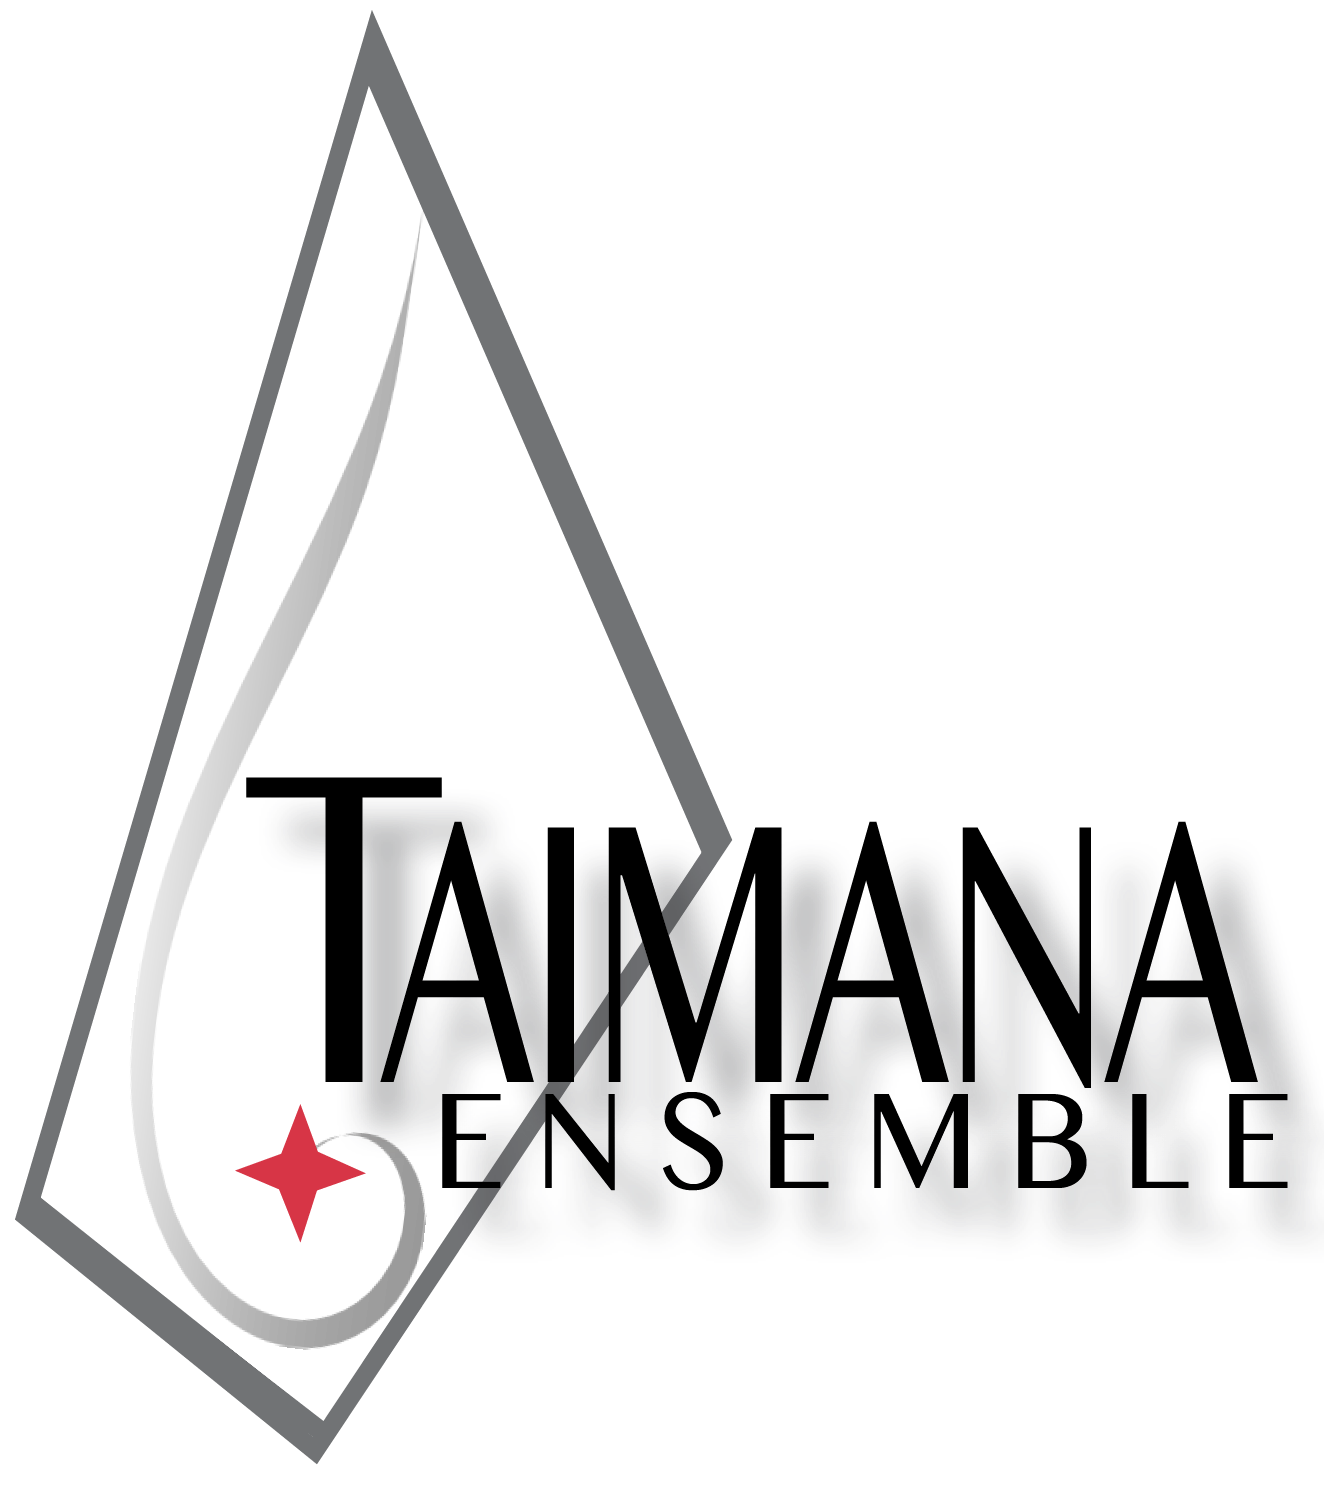 Taimana Ensemble